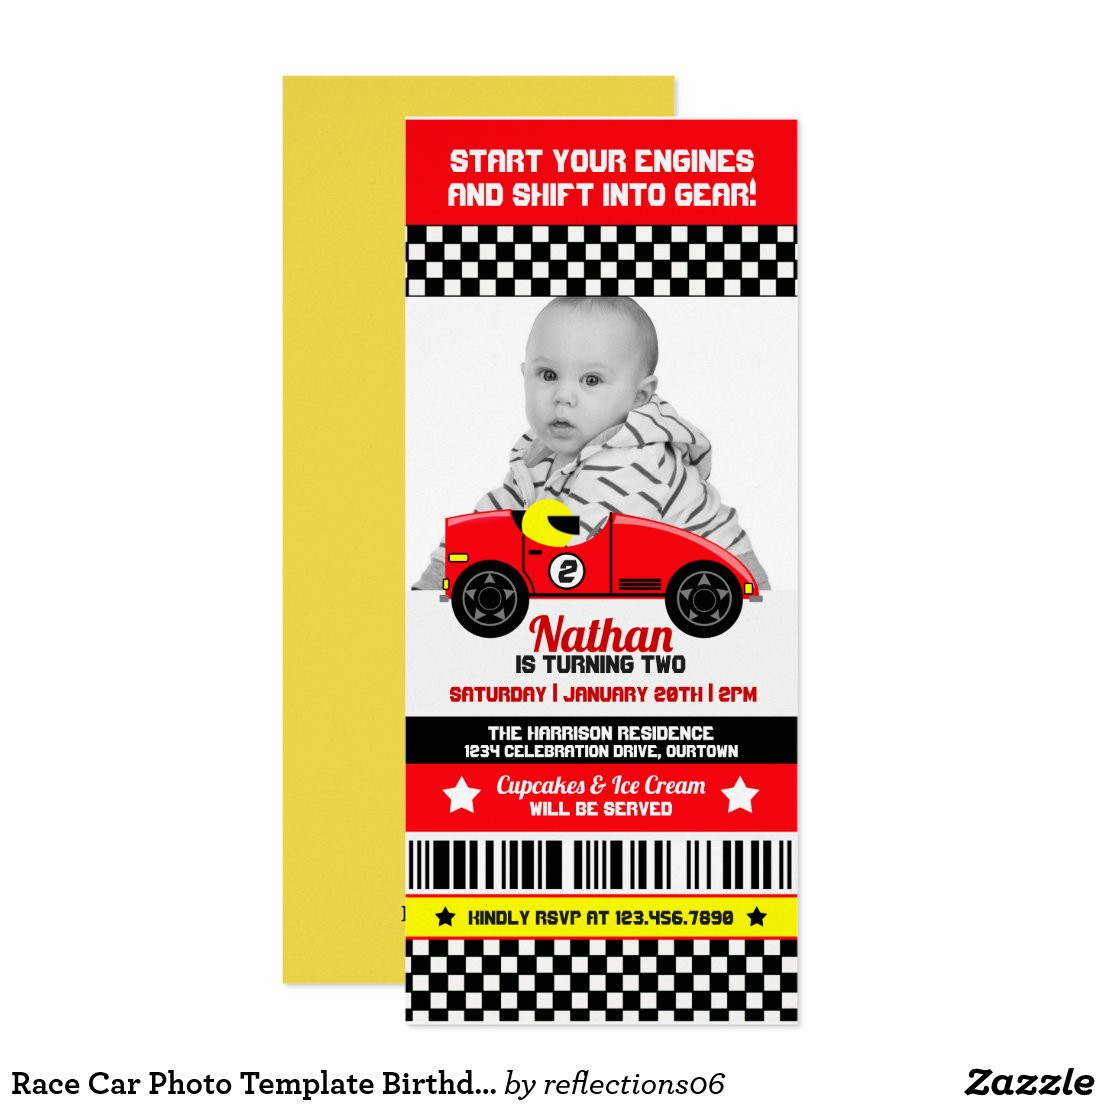 Race Car Photo Template Birthday Party Invitation